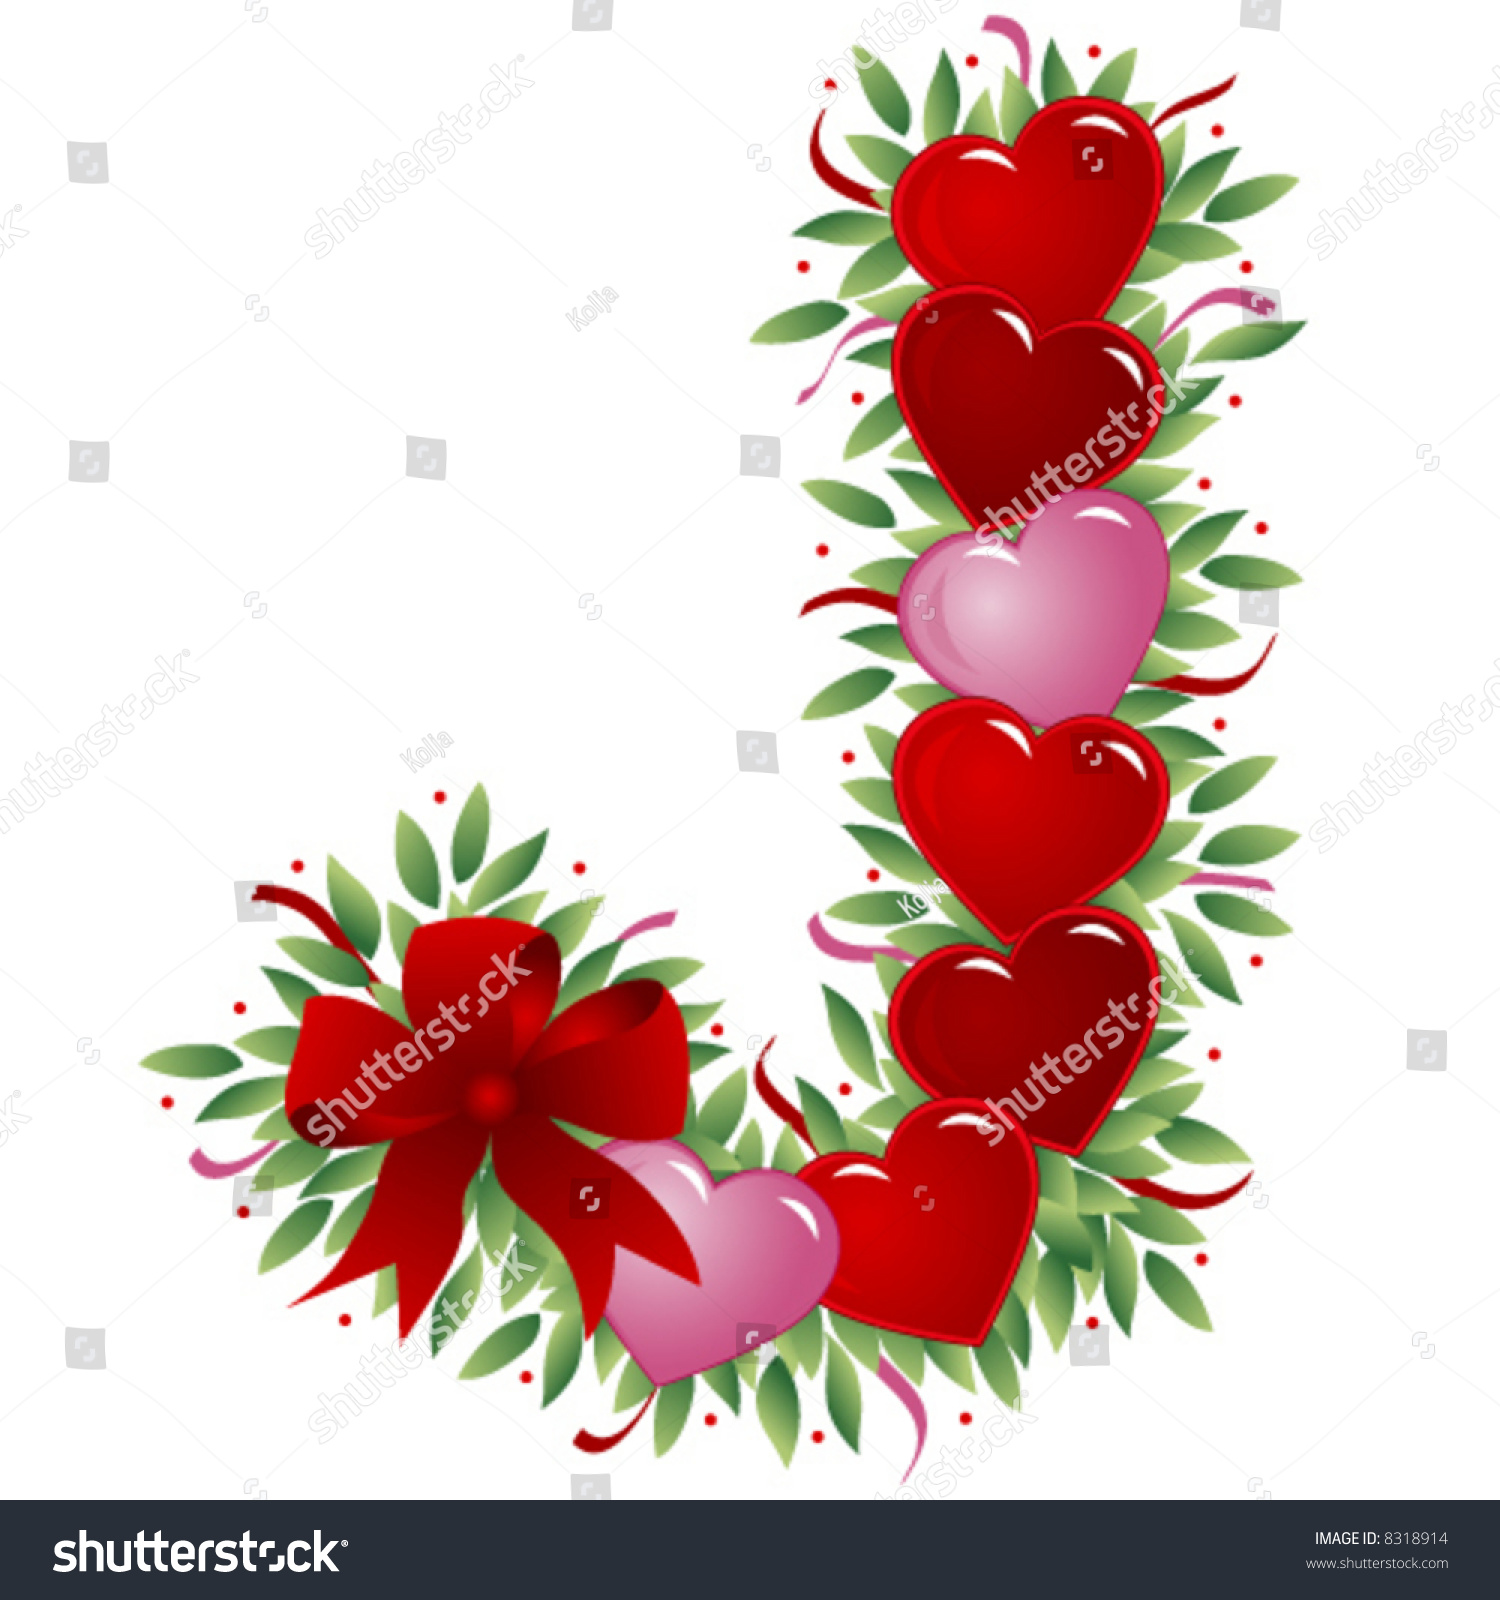 Letter J Valentines Love Letters Stock Vector (Royalty Free